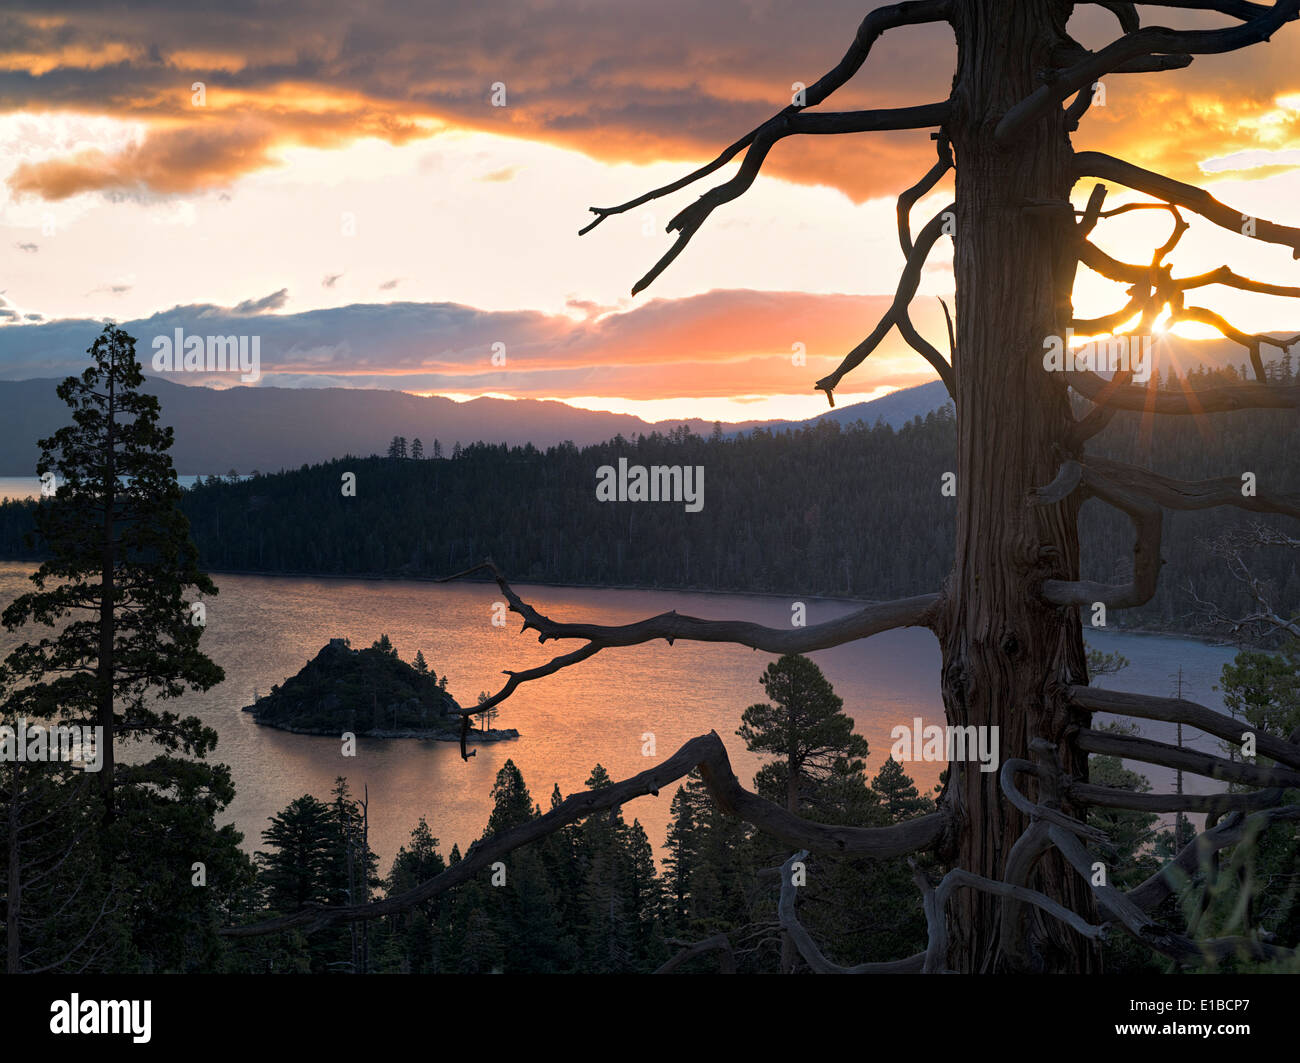 Sunrise over Emerald Bay with dead tree and Fannette Island, Lake Tahoe, California. Stock Photo